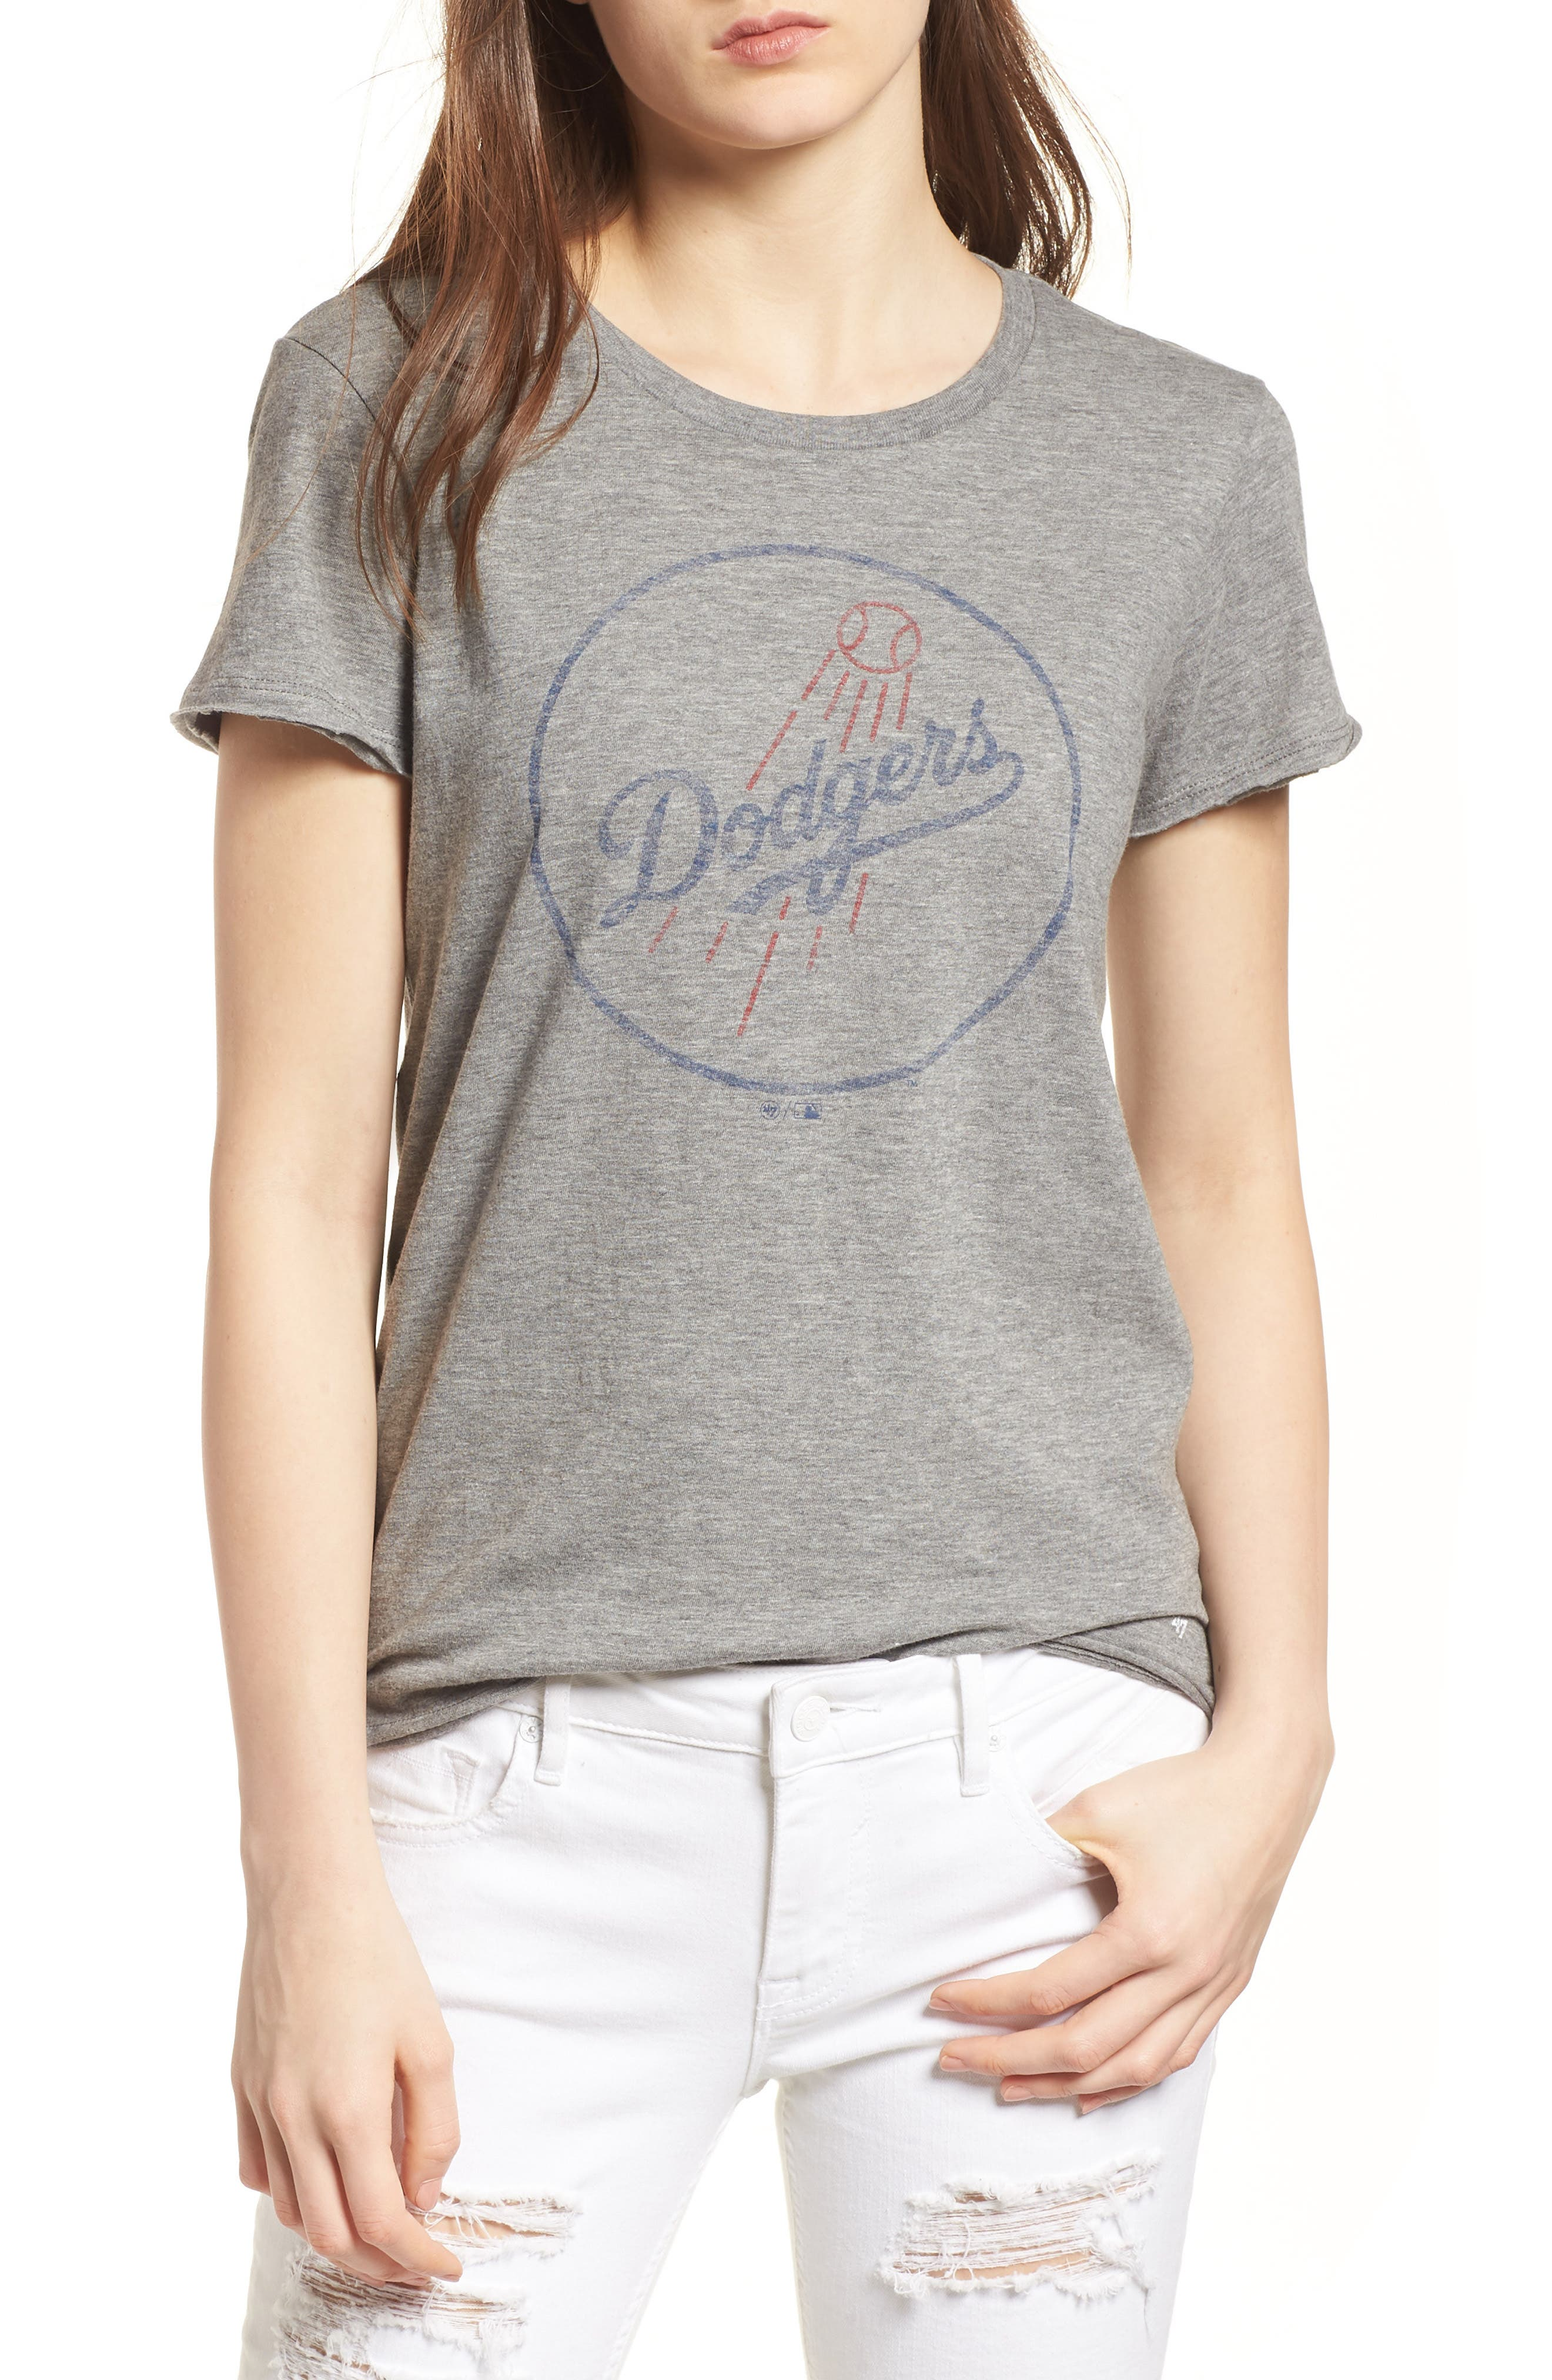 Los Angeles Dodgers Fader Letter Tee,                             Main thumbnail 1, color,                             021